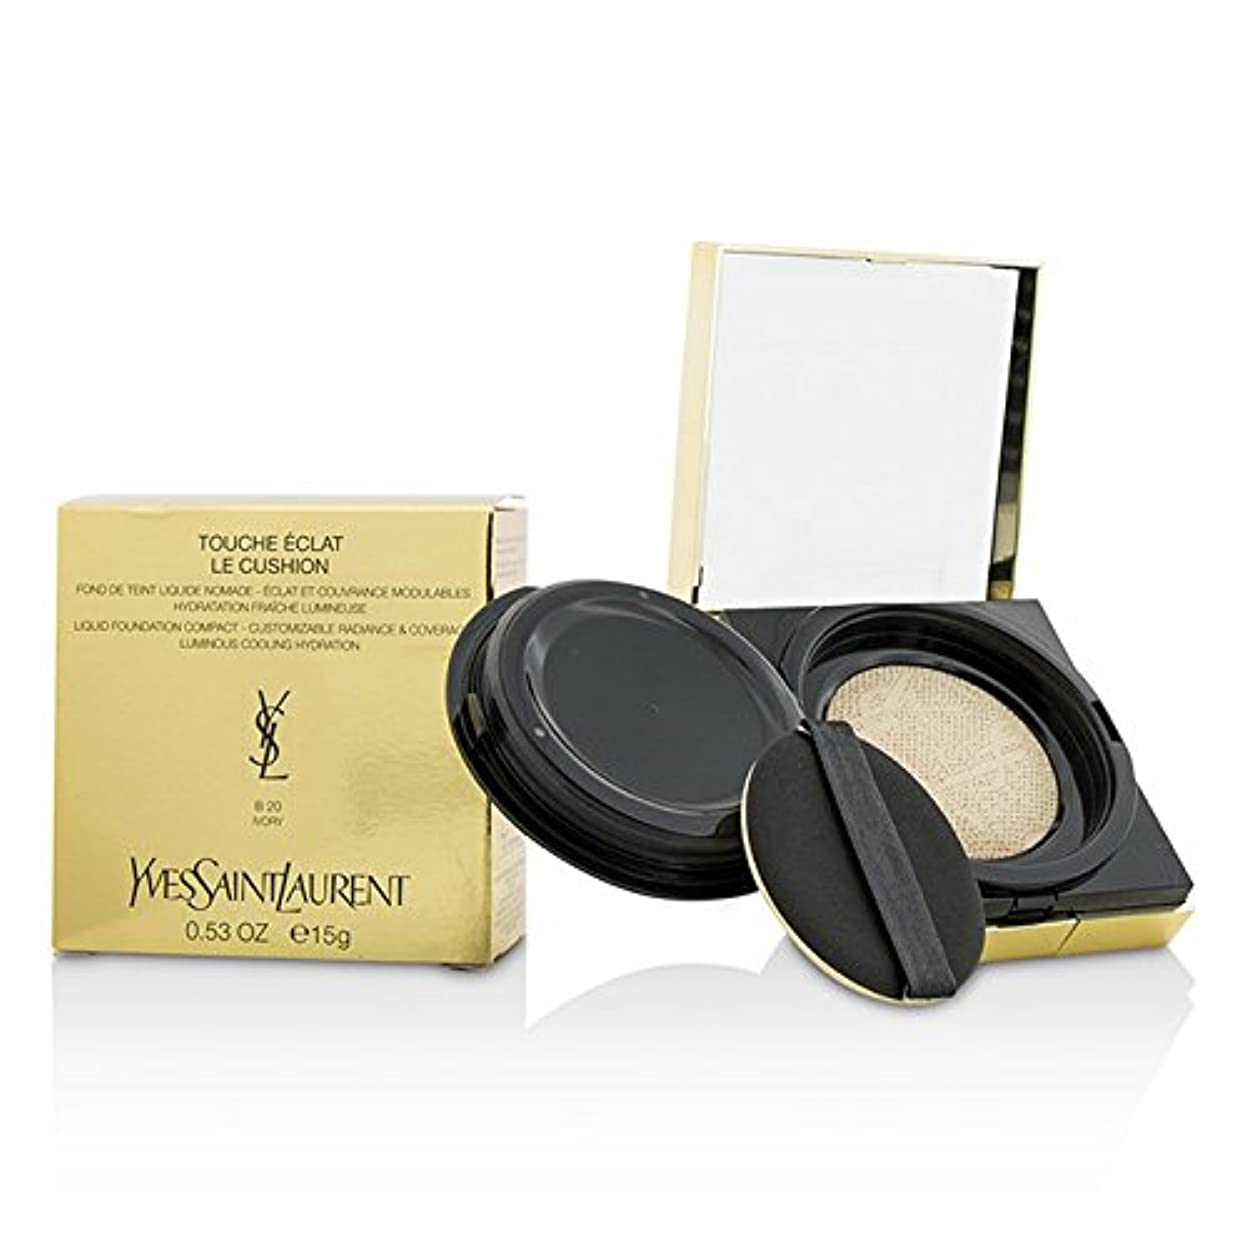 愛人ステッチ殺すイヴサンローラン Touche Eclat Le Cushion Liquid Foundation Compact - #B20 Ivory 15g/0.53oz並行輸入品